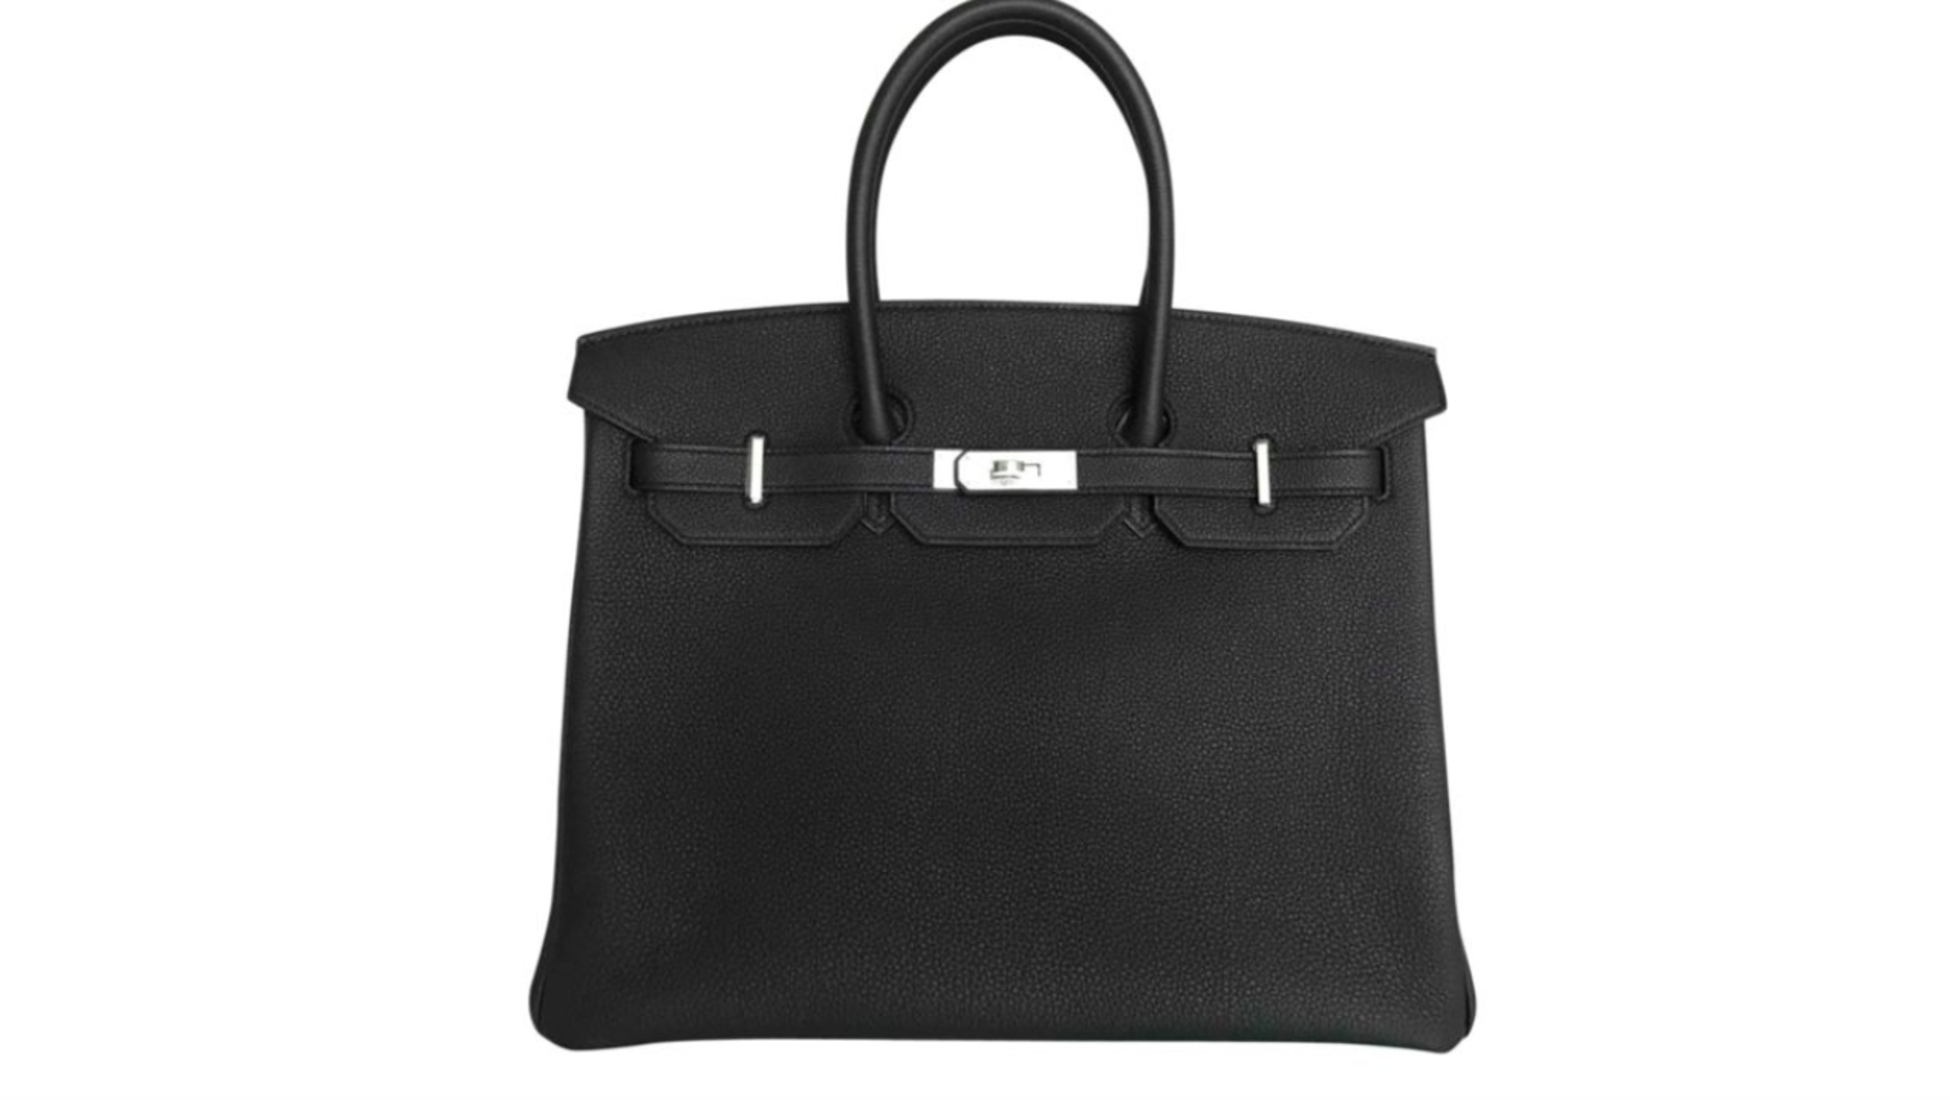 1227309120b 10 Facts About the Hermès Birkin Bag We Bet You Didn t Know - Catawiki